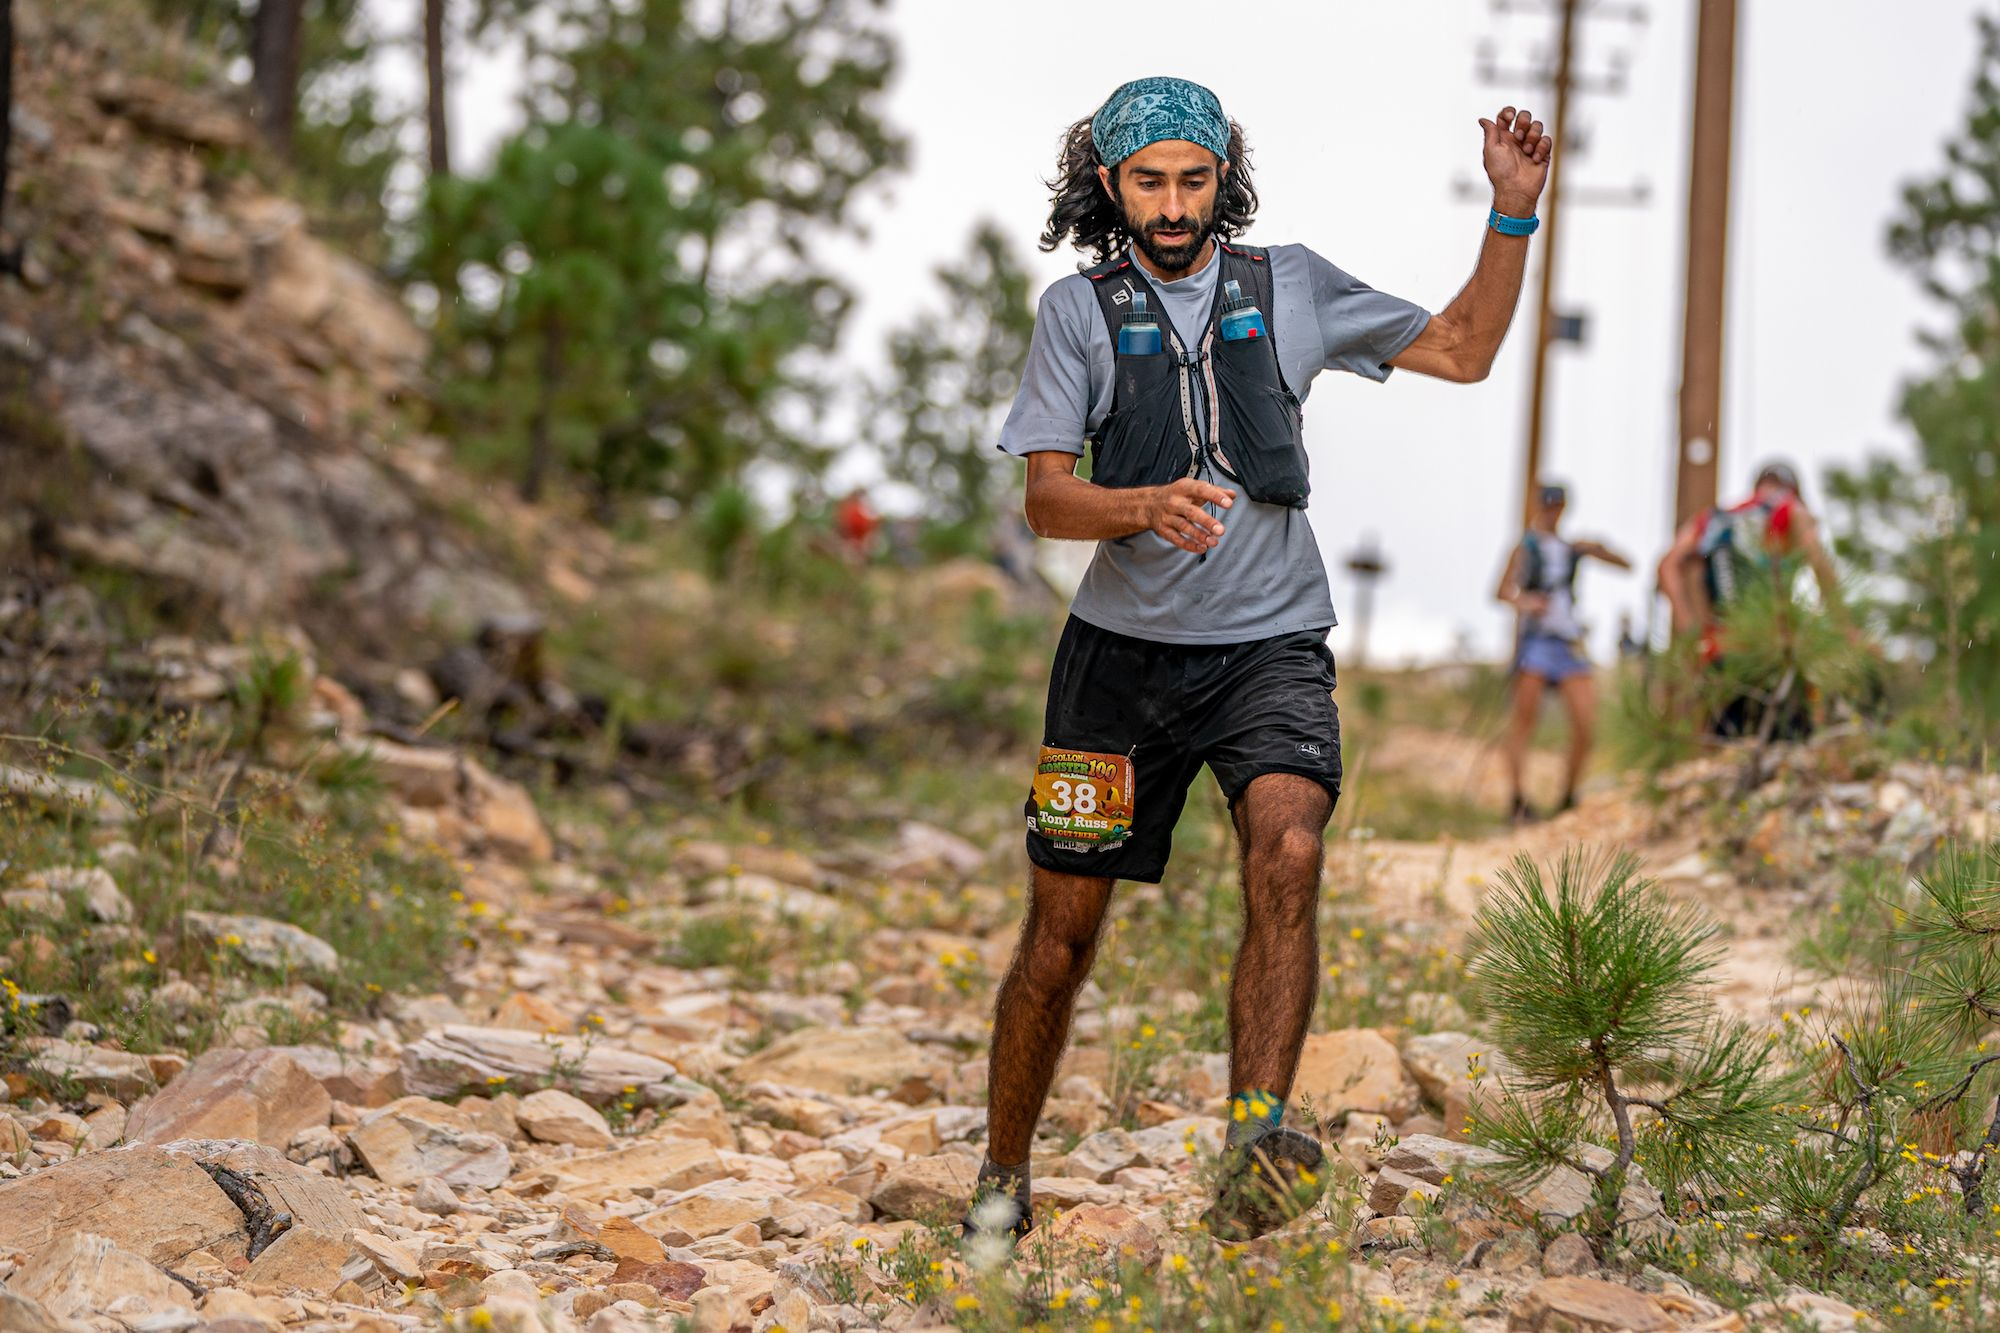 This Ultrarunner Ran 400 Miles to Start Line of a 100-Mile Race—In Sandals